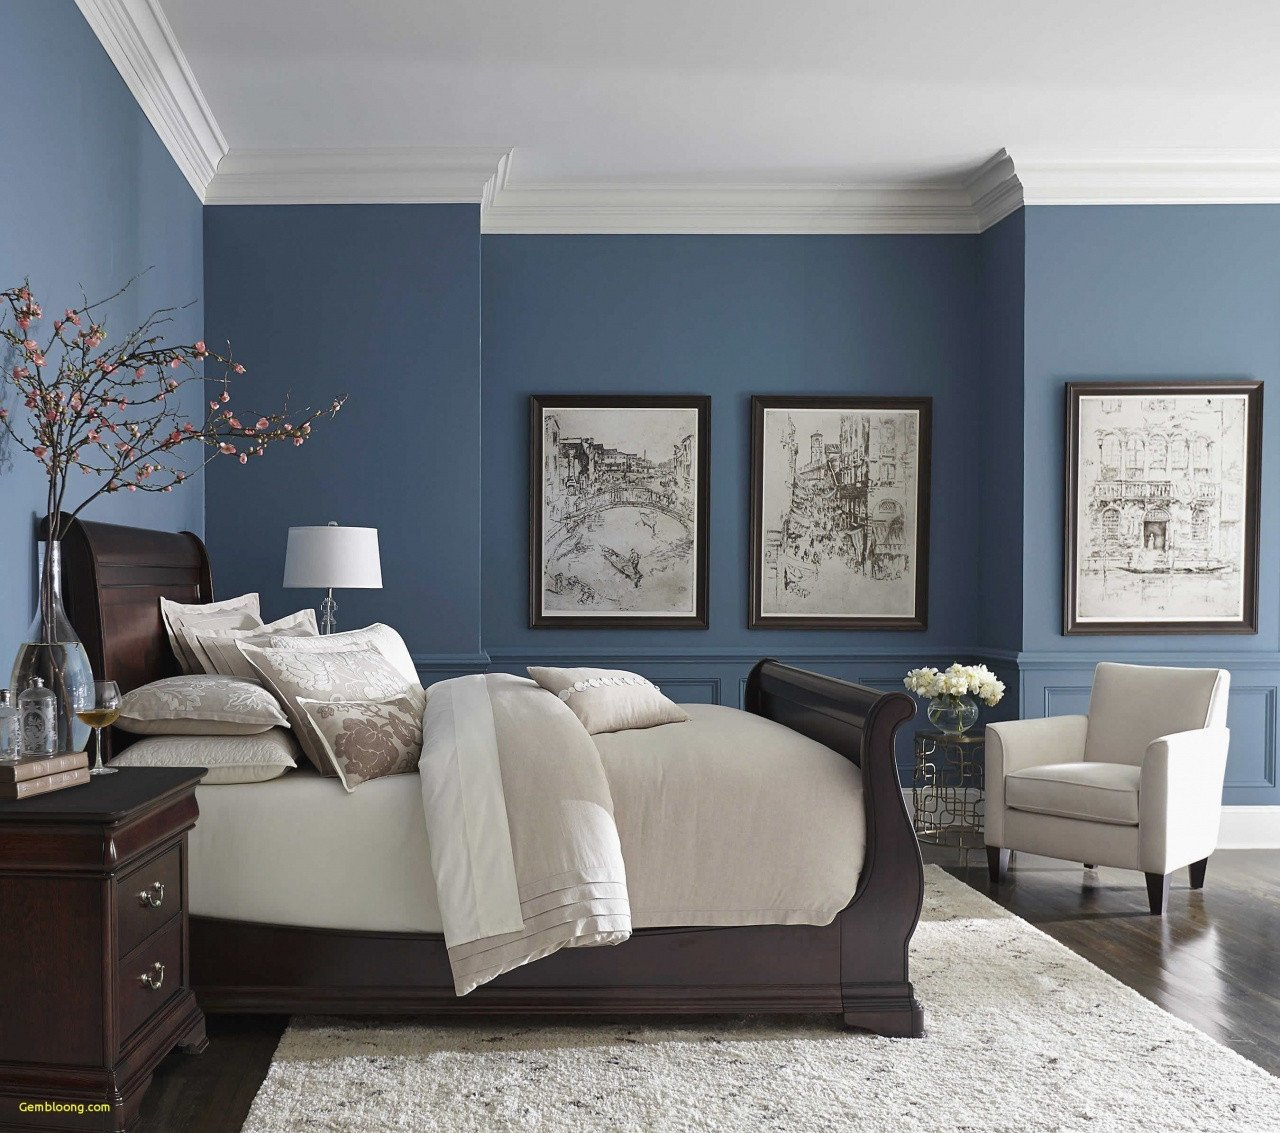 Black Bedroom Furniture Decor Awesome Bedroom Colors with Brown Furniture Decorating Ideas for